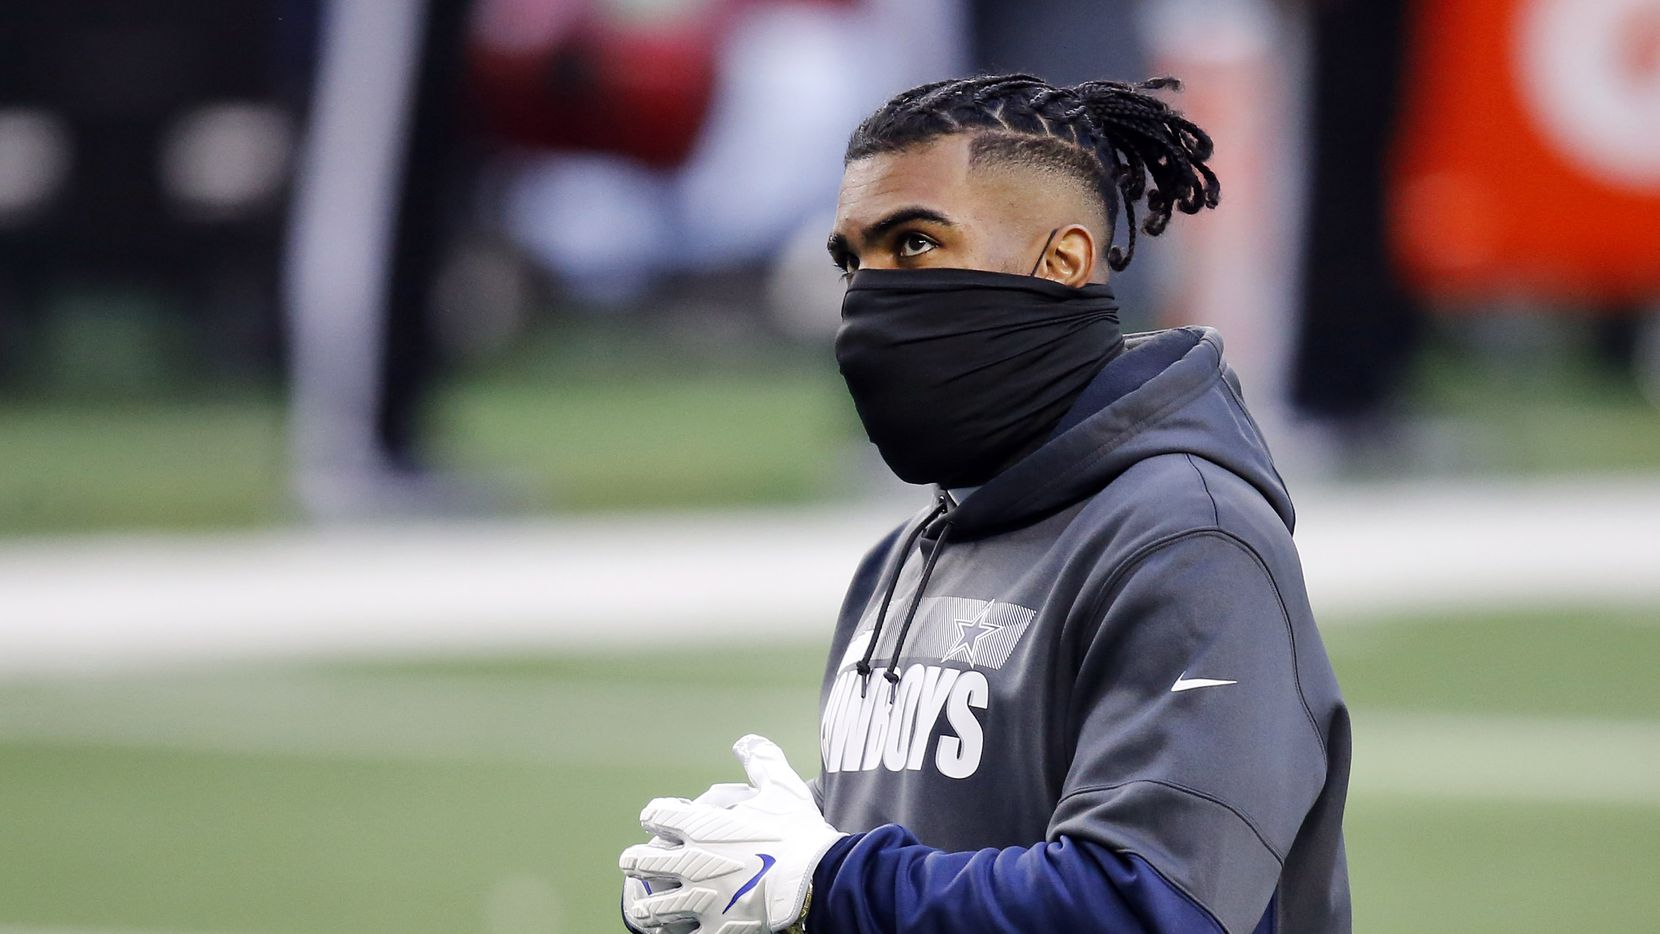 Dallas Cowboys running back Ezekiel Elliott didn't dressed out for pregame warmups before facing the San Francisco 49ers at AT&T Stadium in Arlington, Texas, Sunday, December 20, 2020. (Tom Fox/The Dallas Morning News)